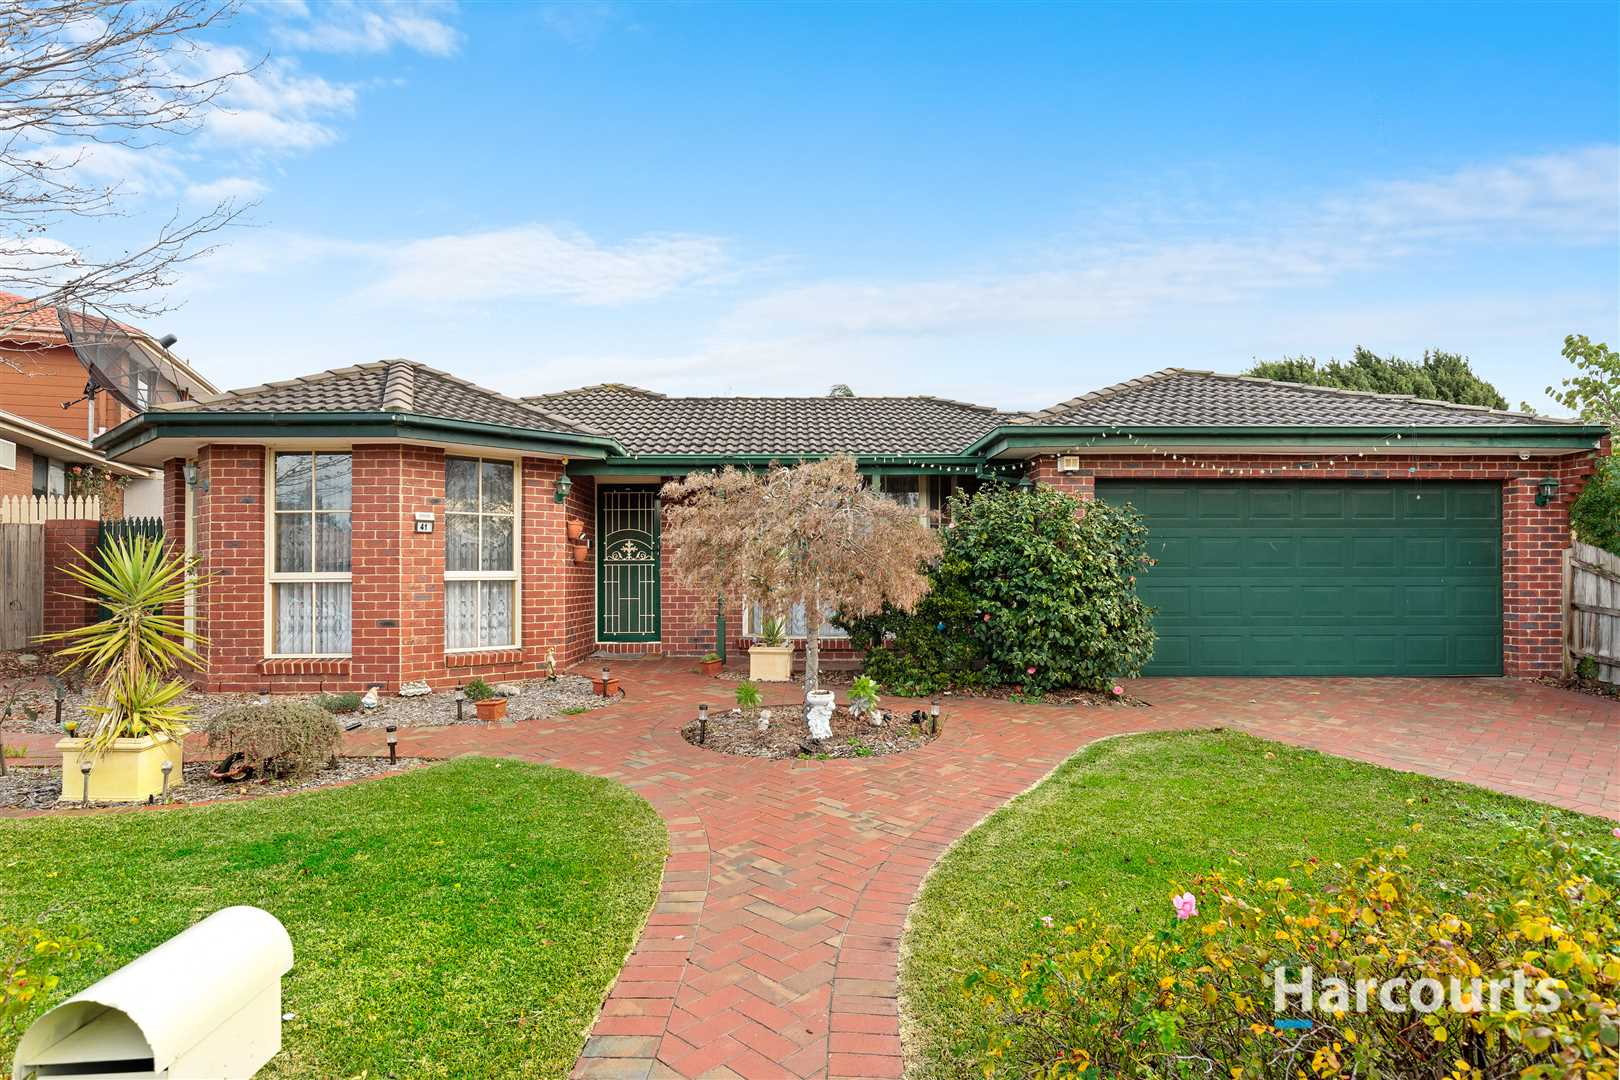 Appealing 3 Bedroom Home with Study